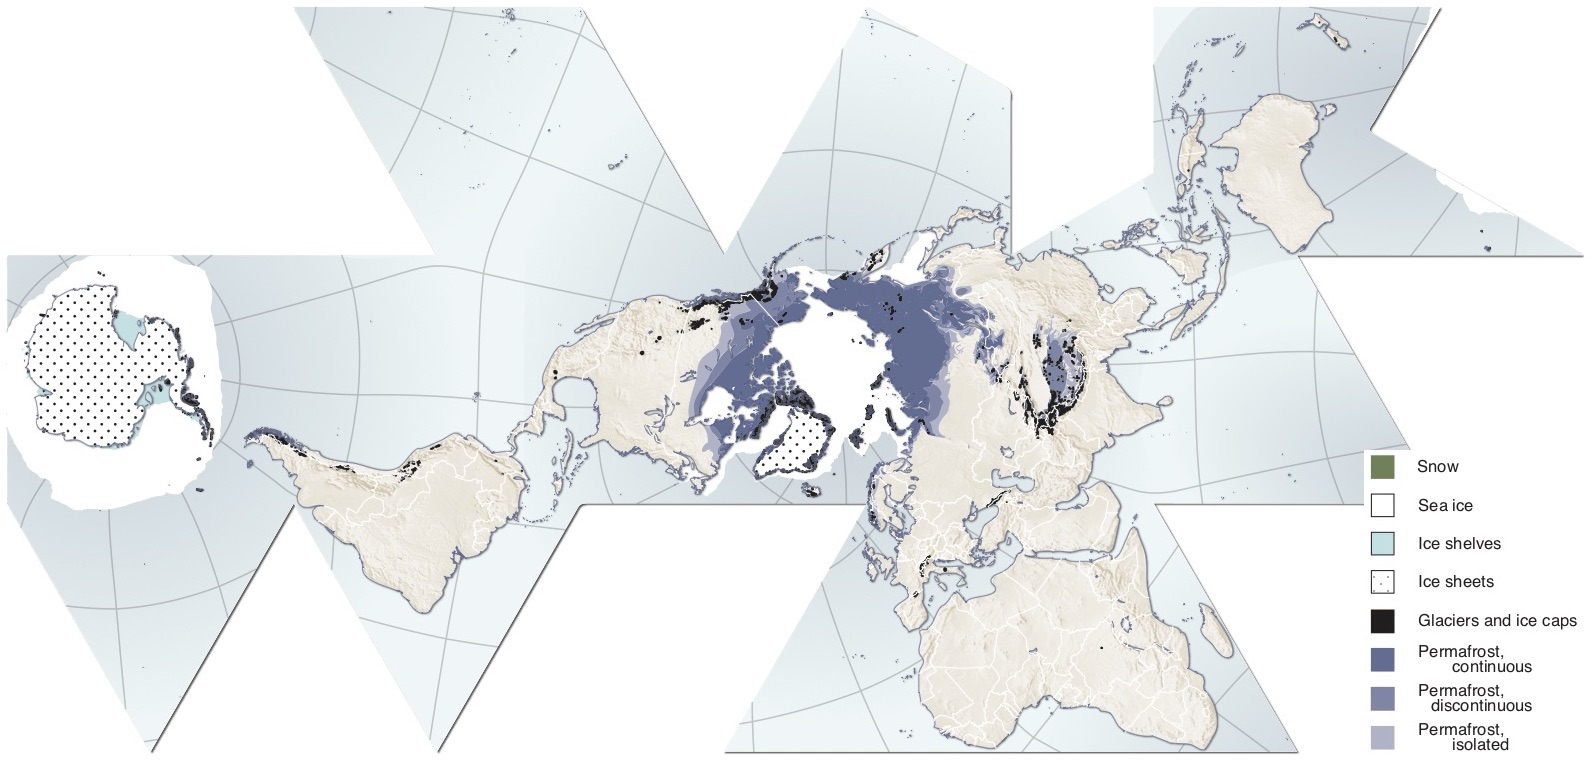 Map of Earth's cryosphere regions: snow, sea ice, ice shelves, ice sheets, glaciers, ice caps, and permafrost.